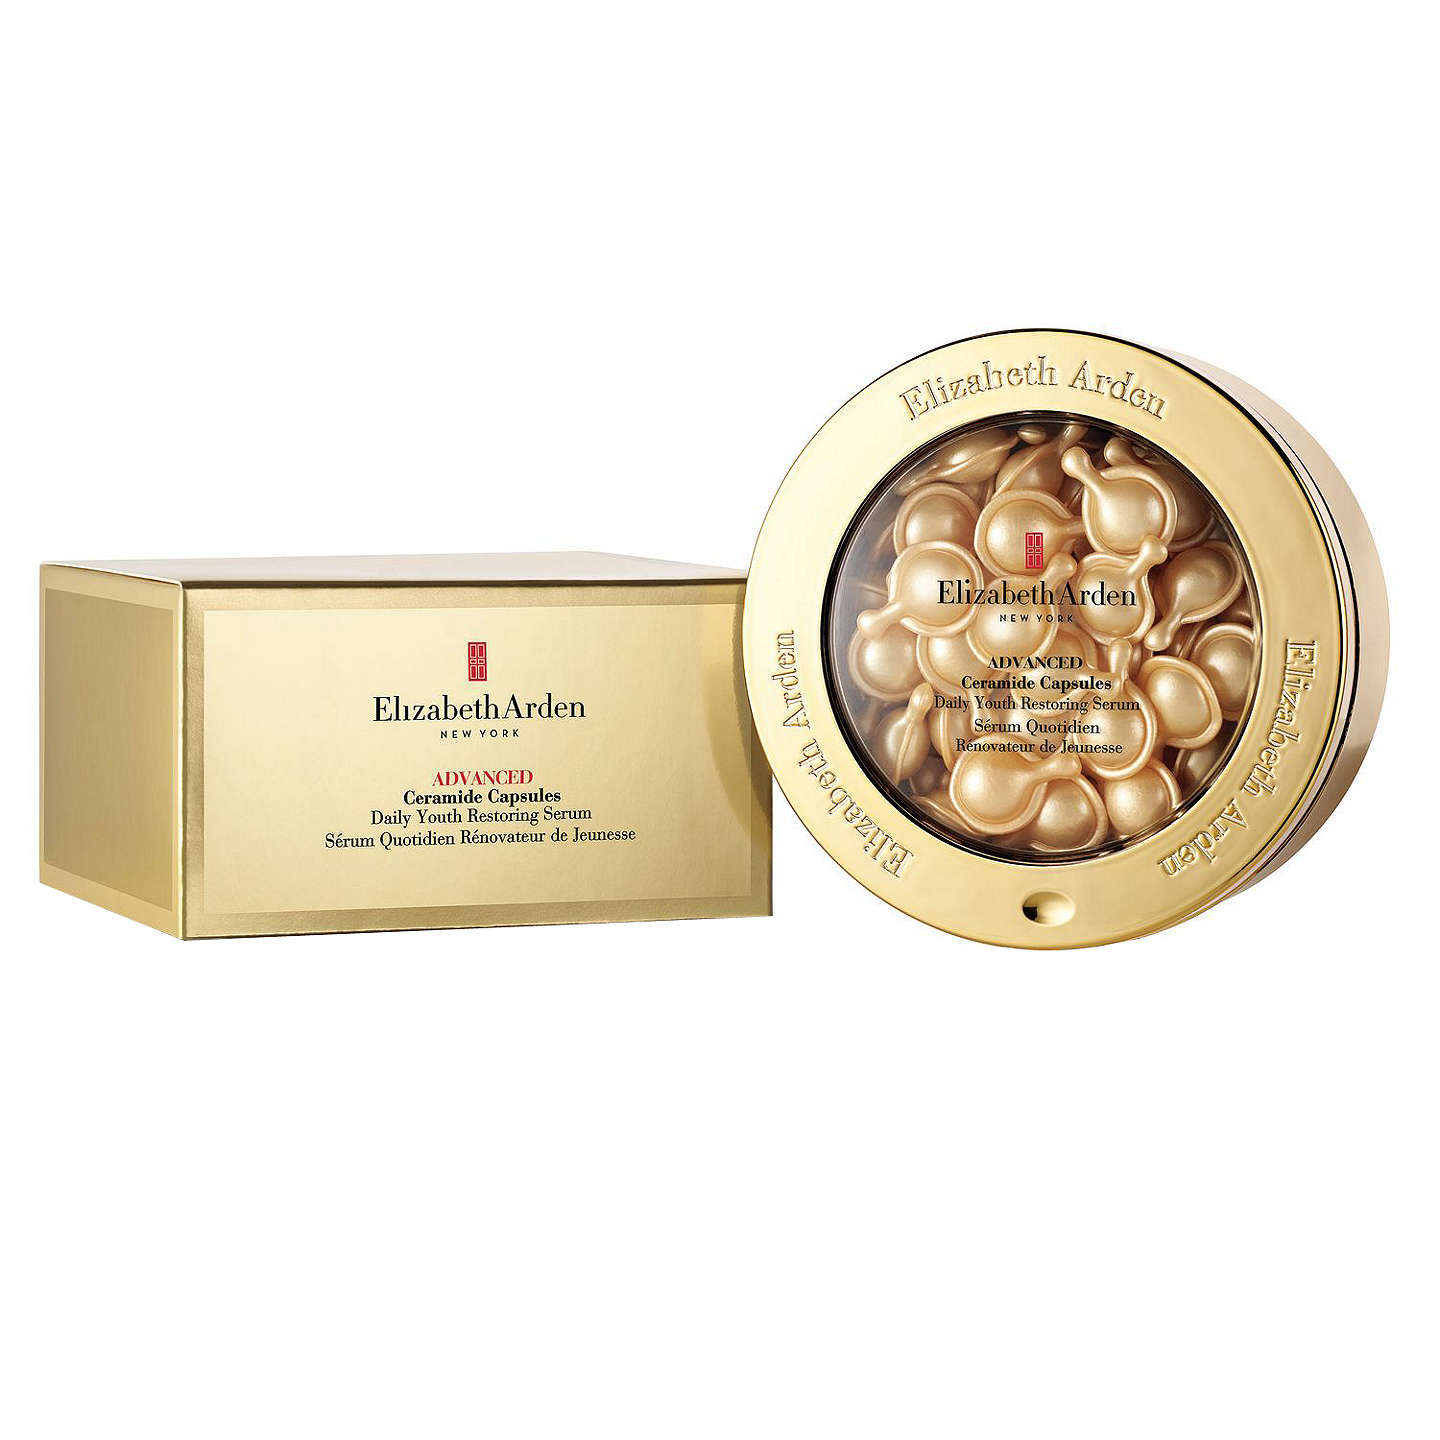 BuyElizabeth Arden Advanced Ceramide Capsules Daily Youth Restoring Serum (60) Online at johnlewis.com